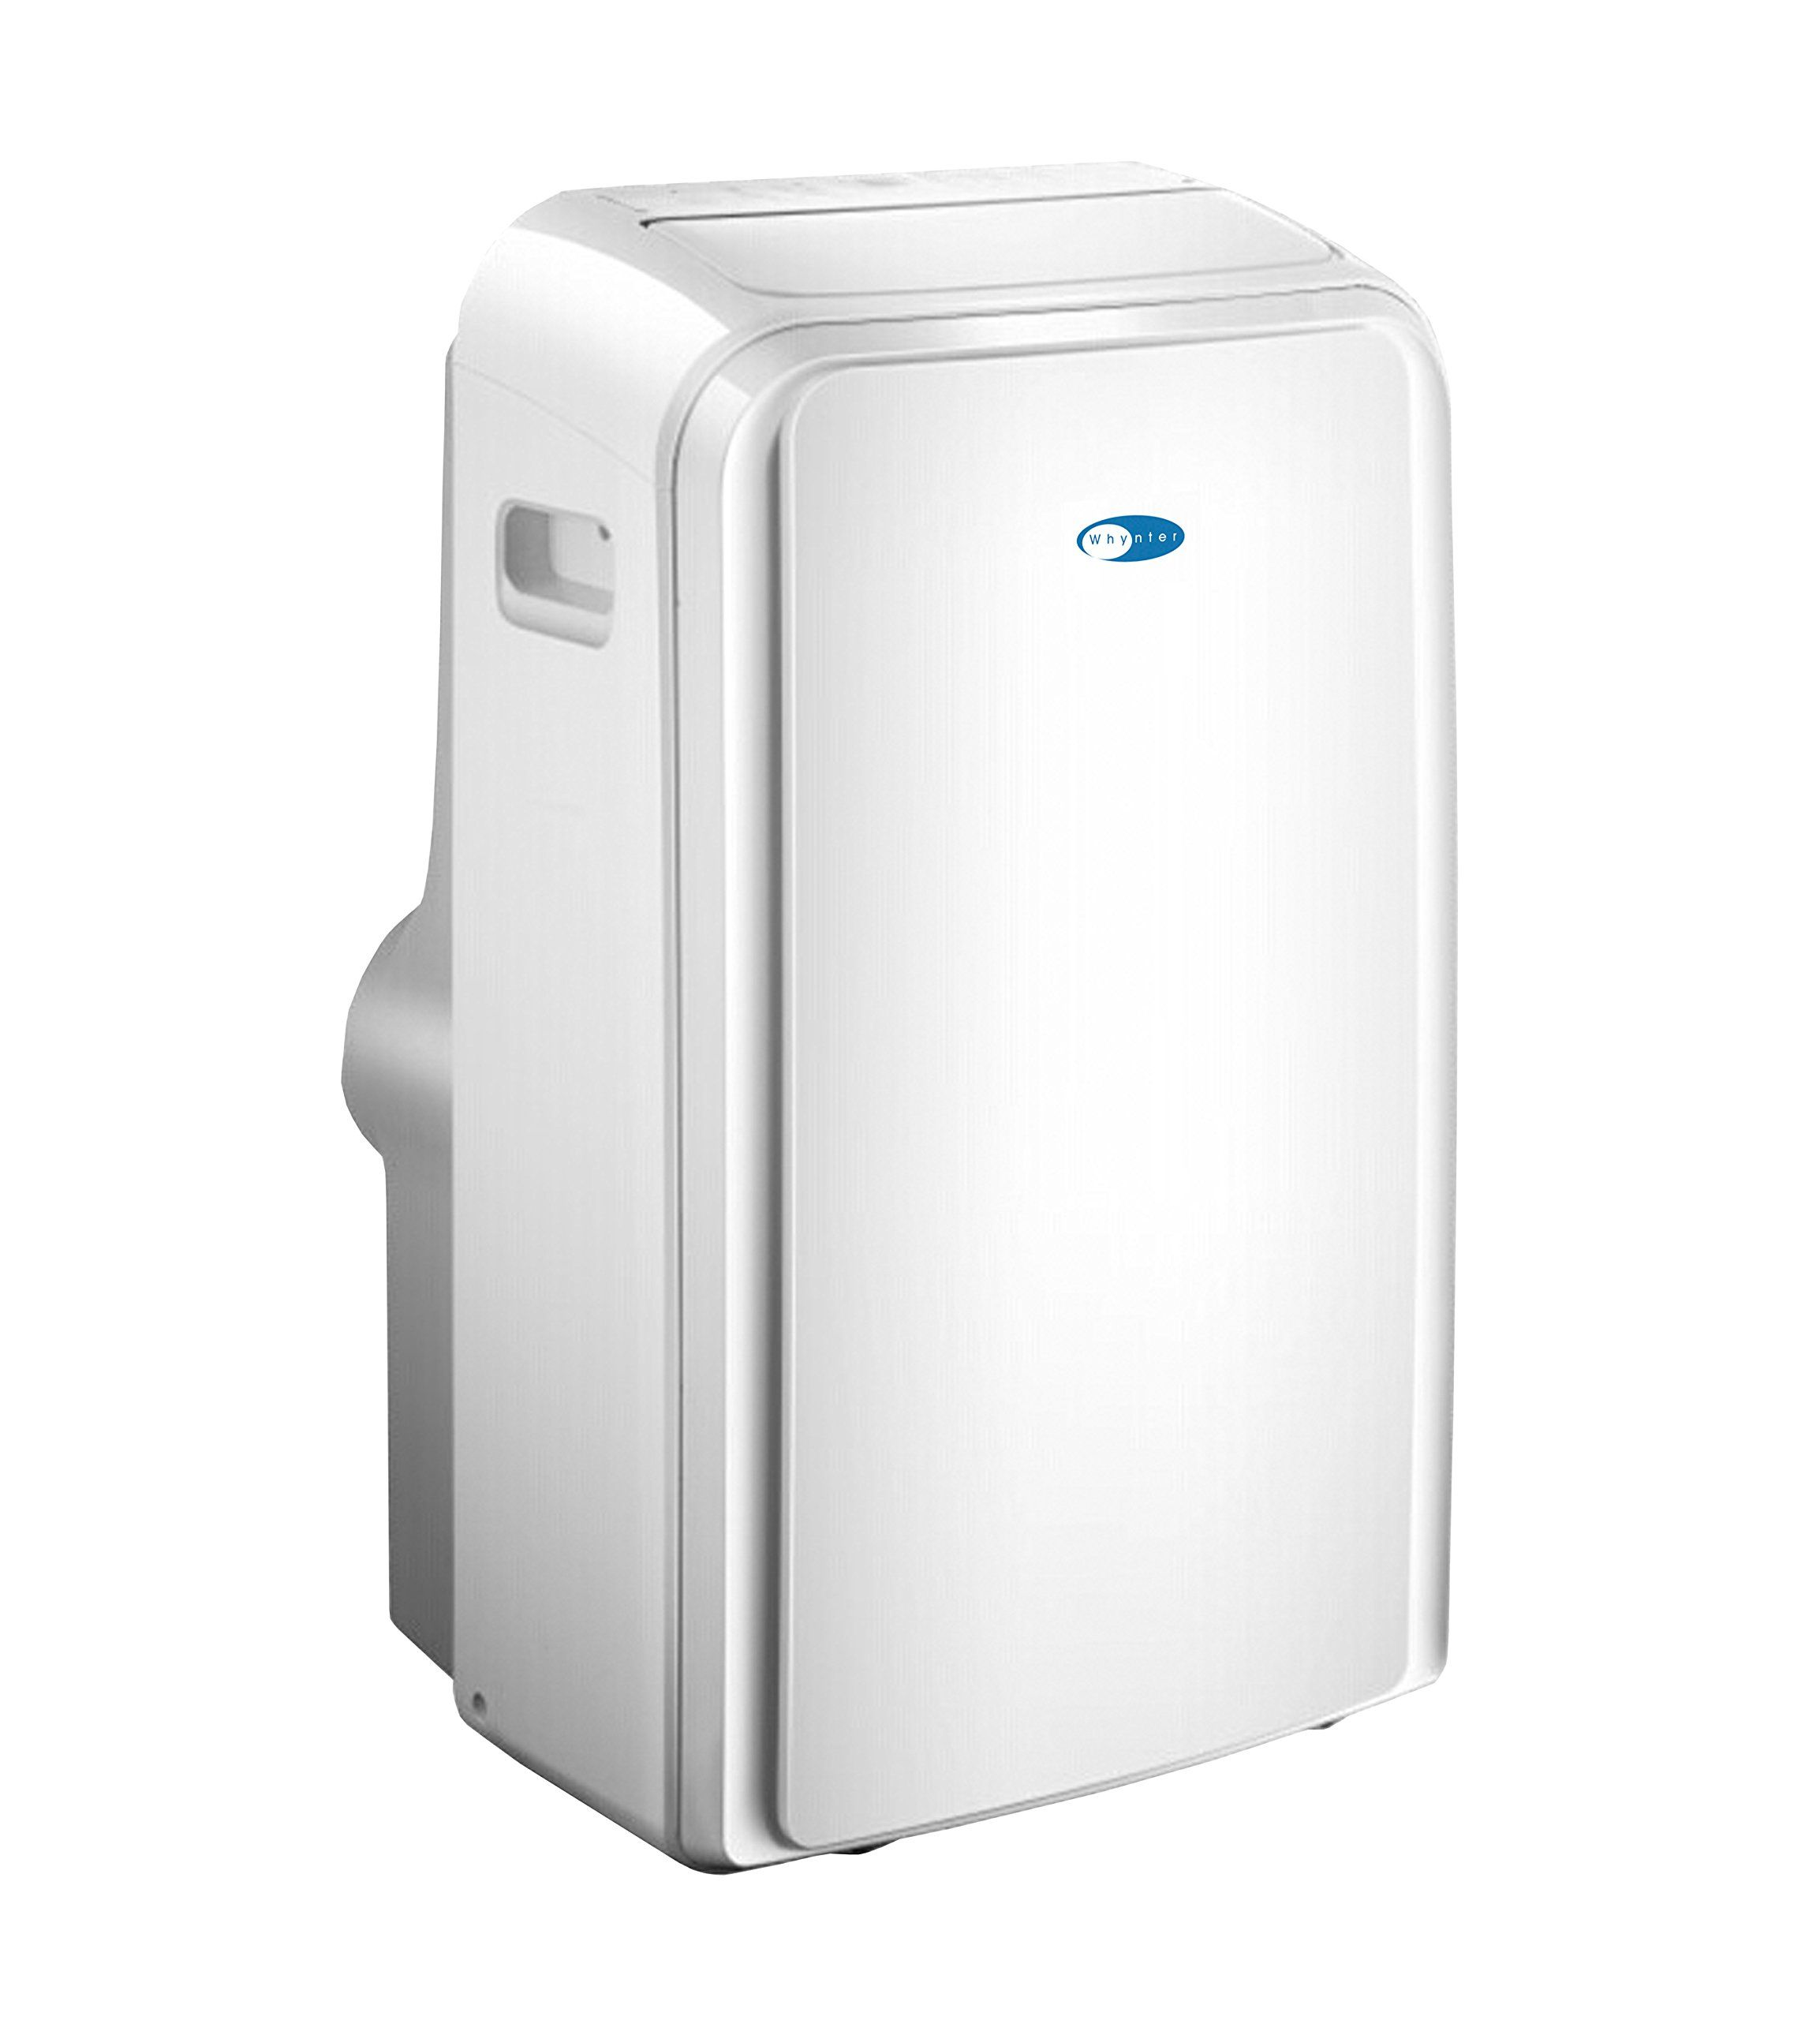 Whynter 12000 Btu Dualhose Portable Air Conditioner With 3m And Silvershield Filter Arc126md Check This Portable Air Conditioner Trash Can Washing Machine